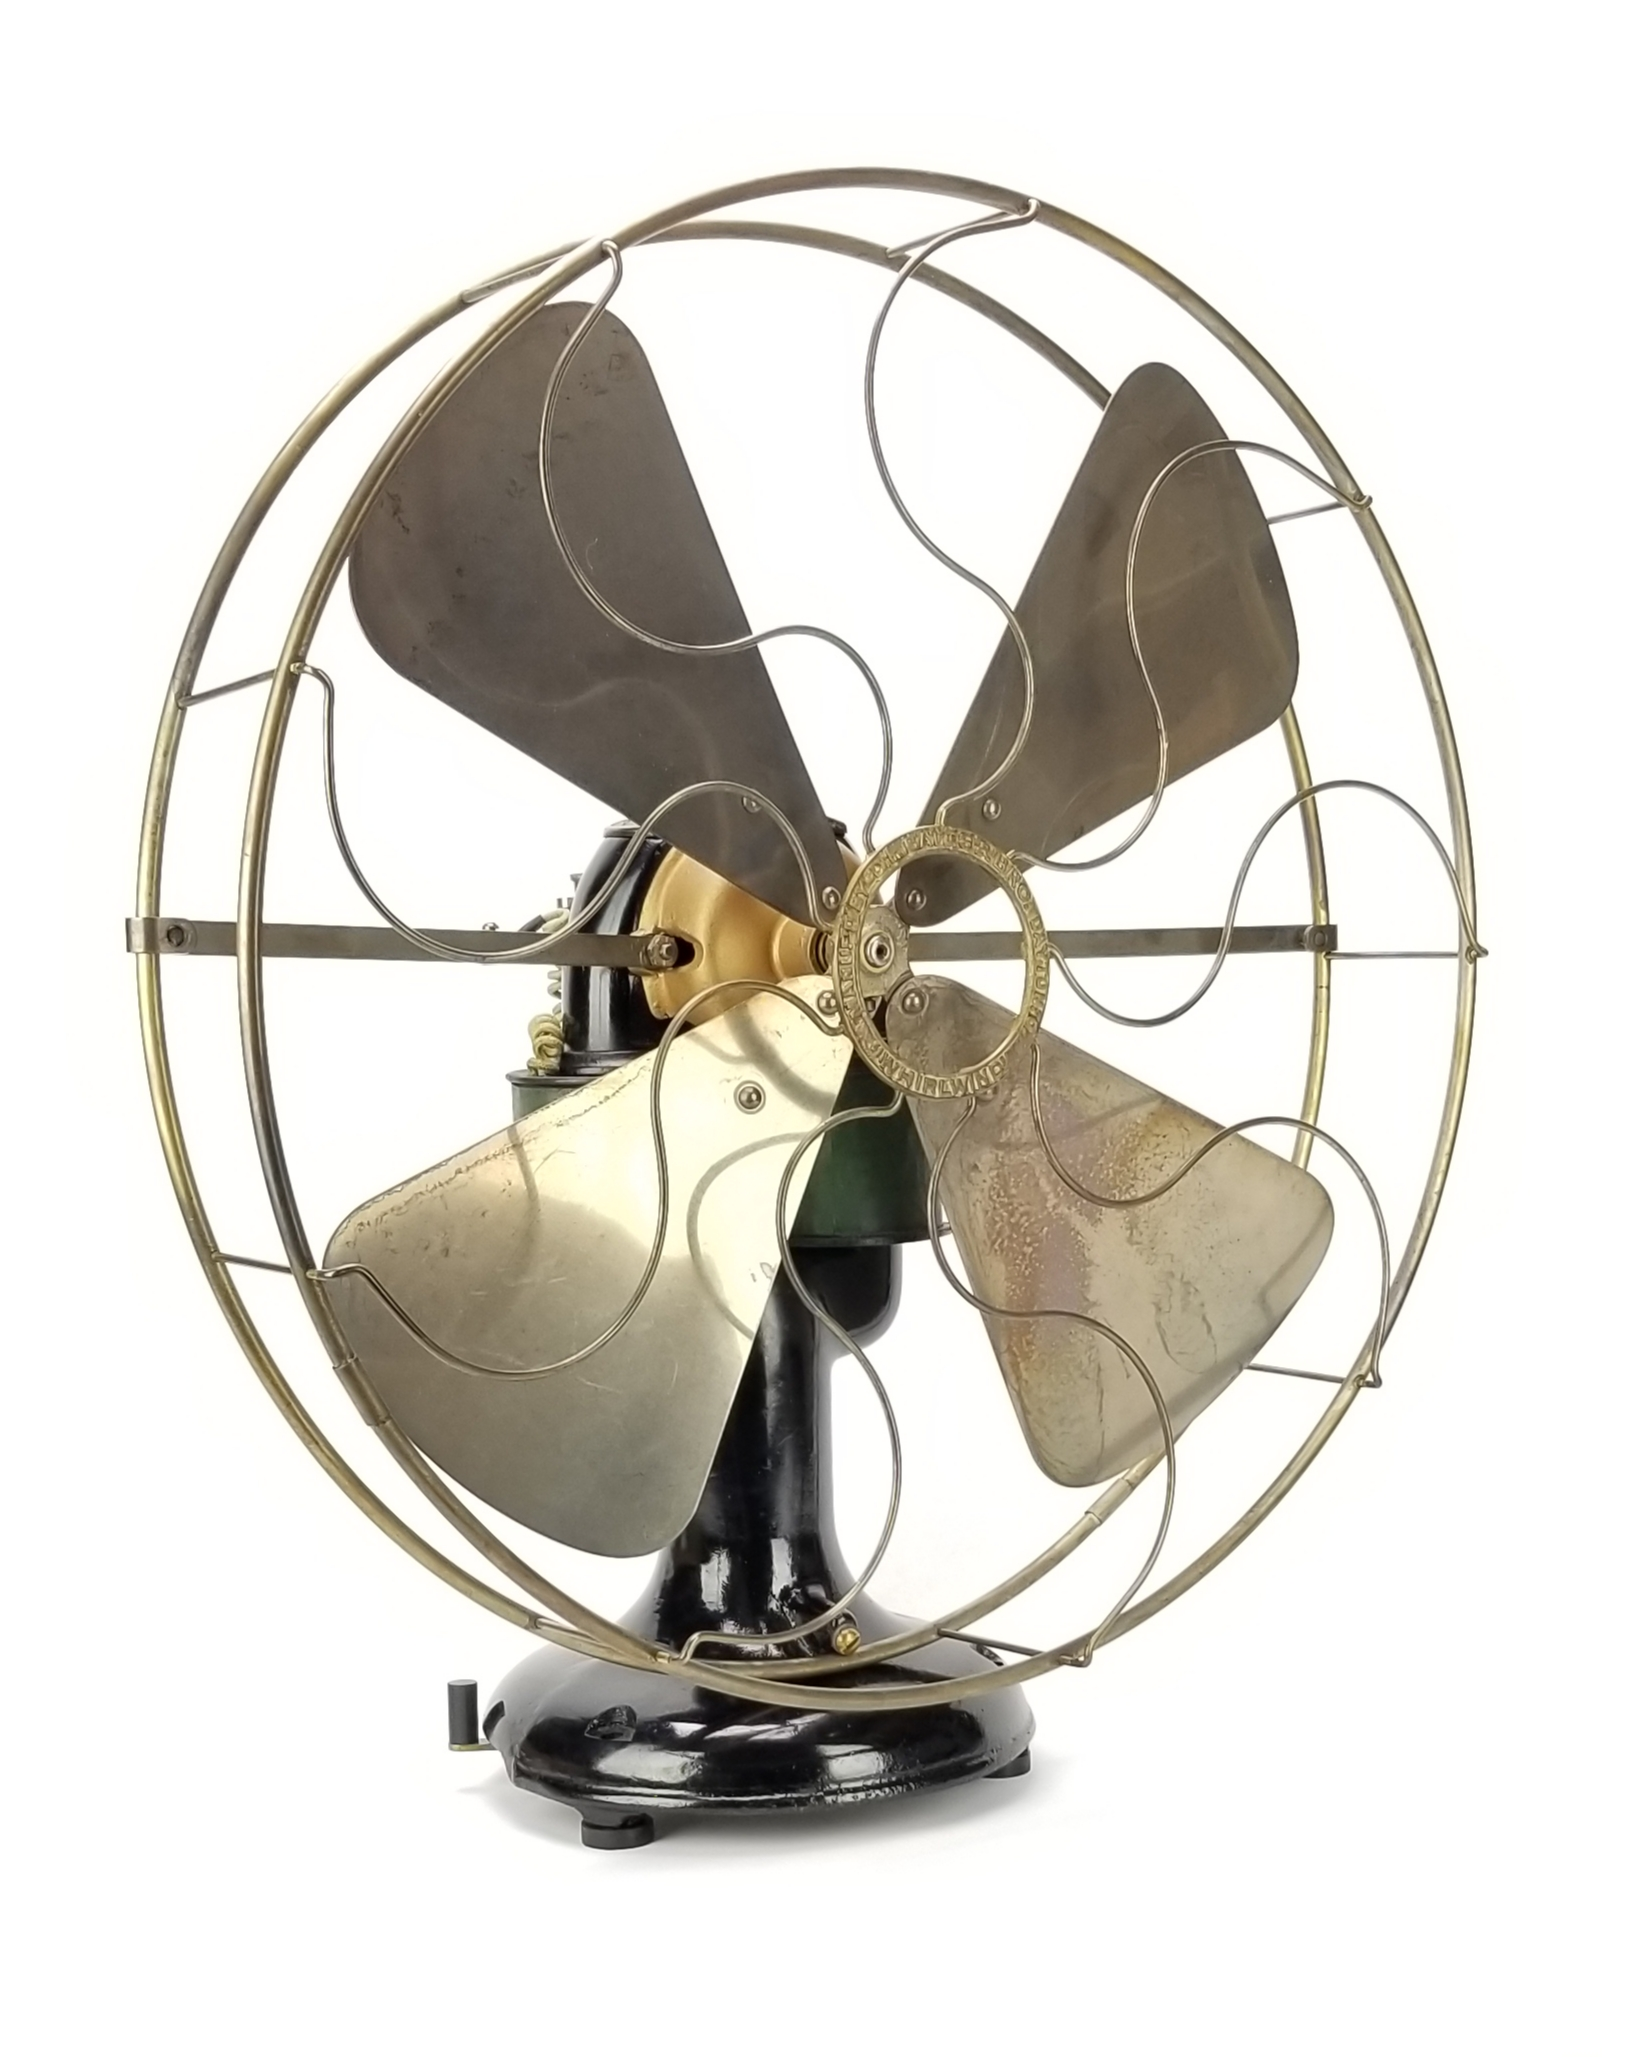 1895 16' D.L. Bates Bipolar Desk Fan